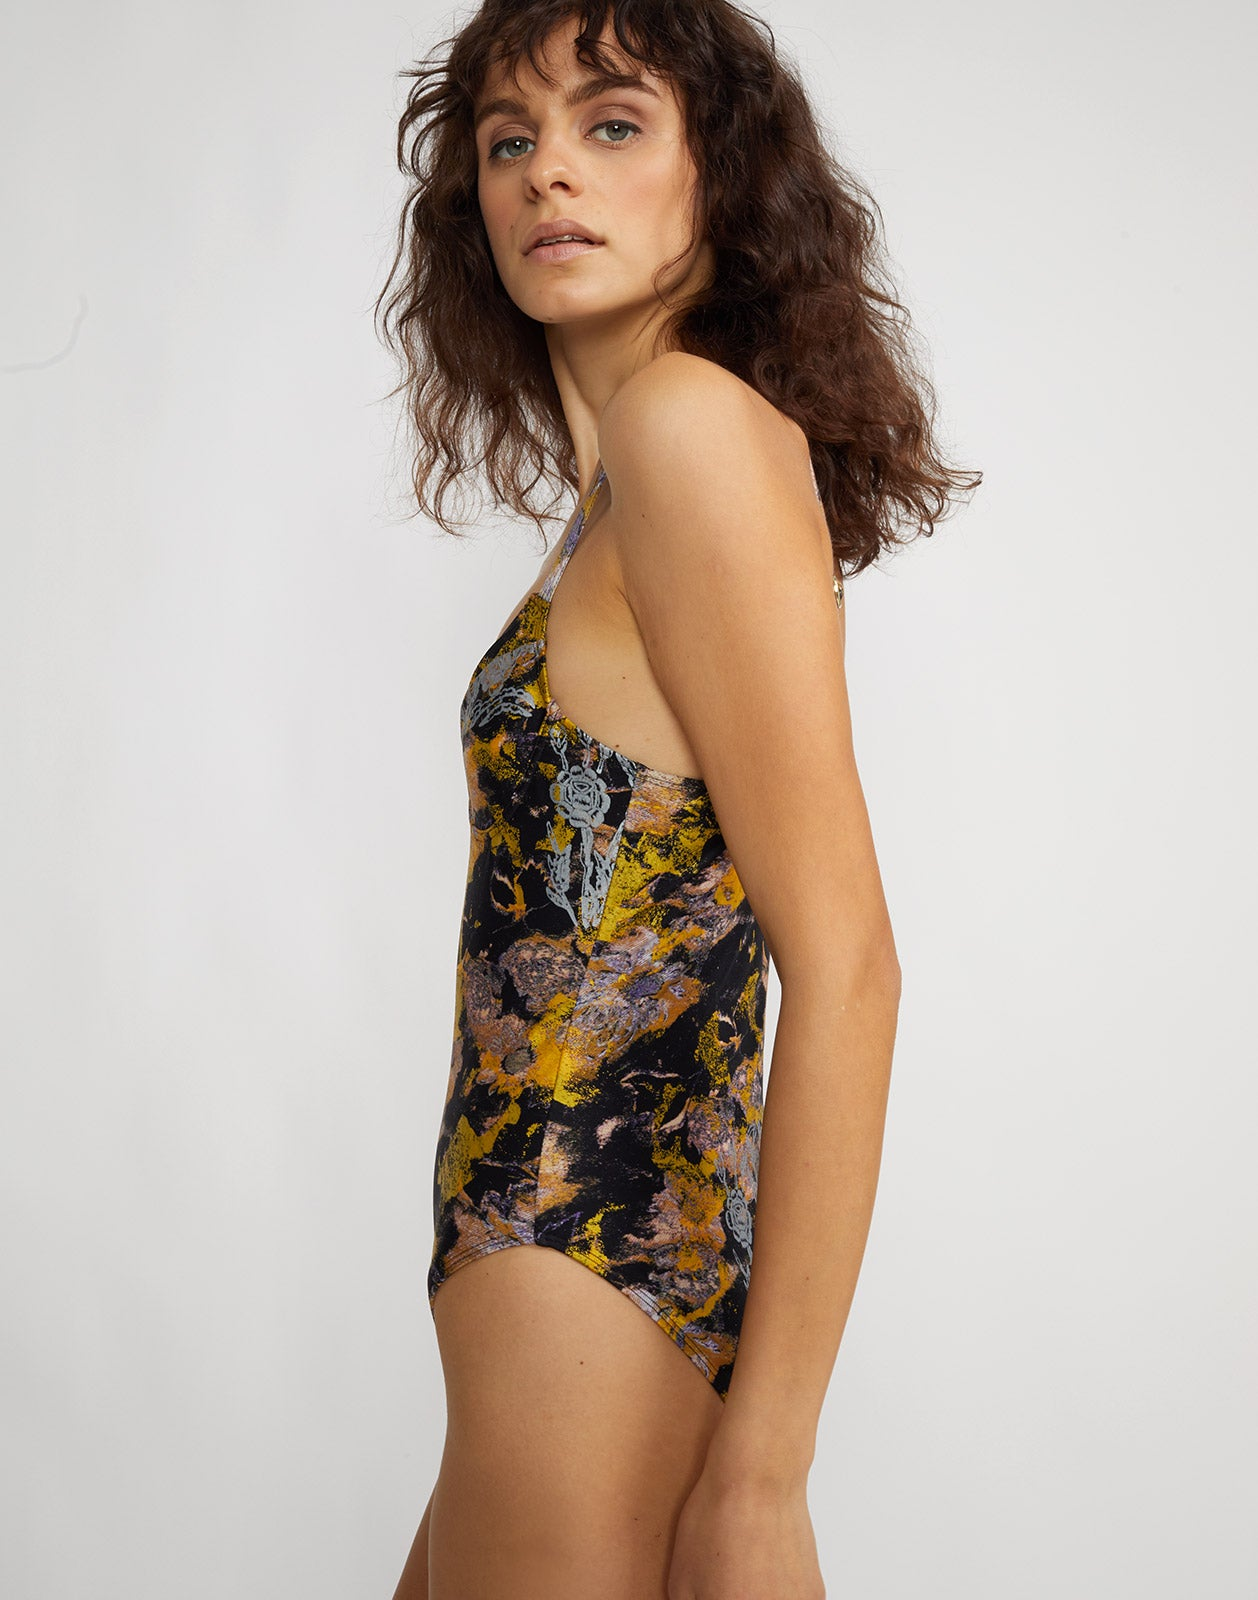 Side view of metallic floral one piece swimsuit with underwire bralette and adjustable straps.